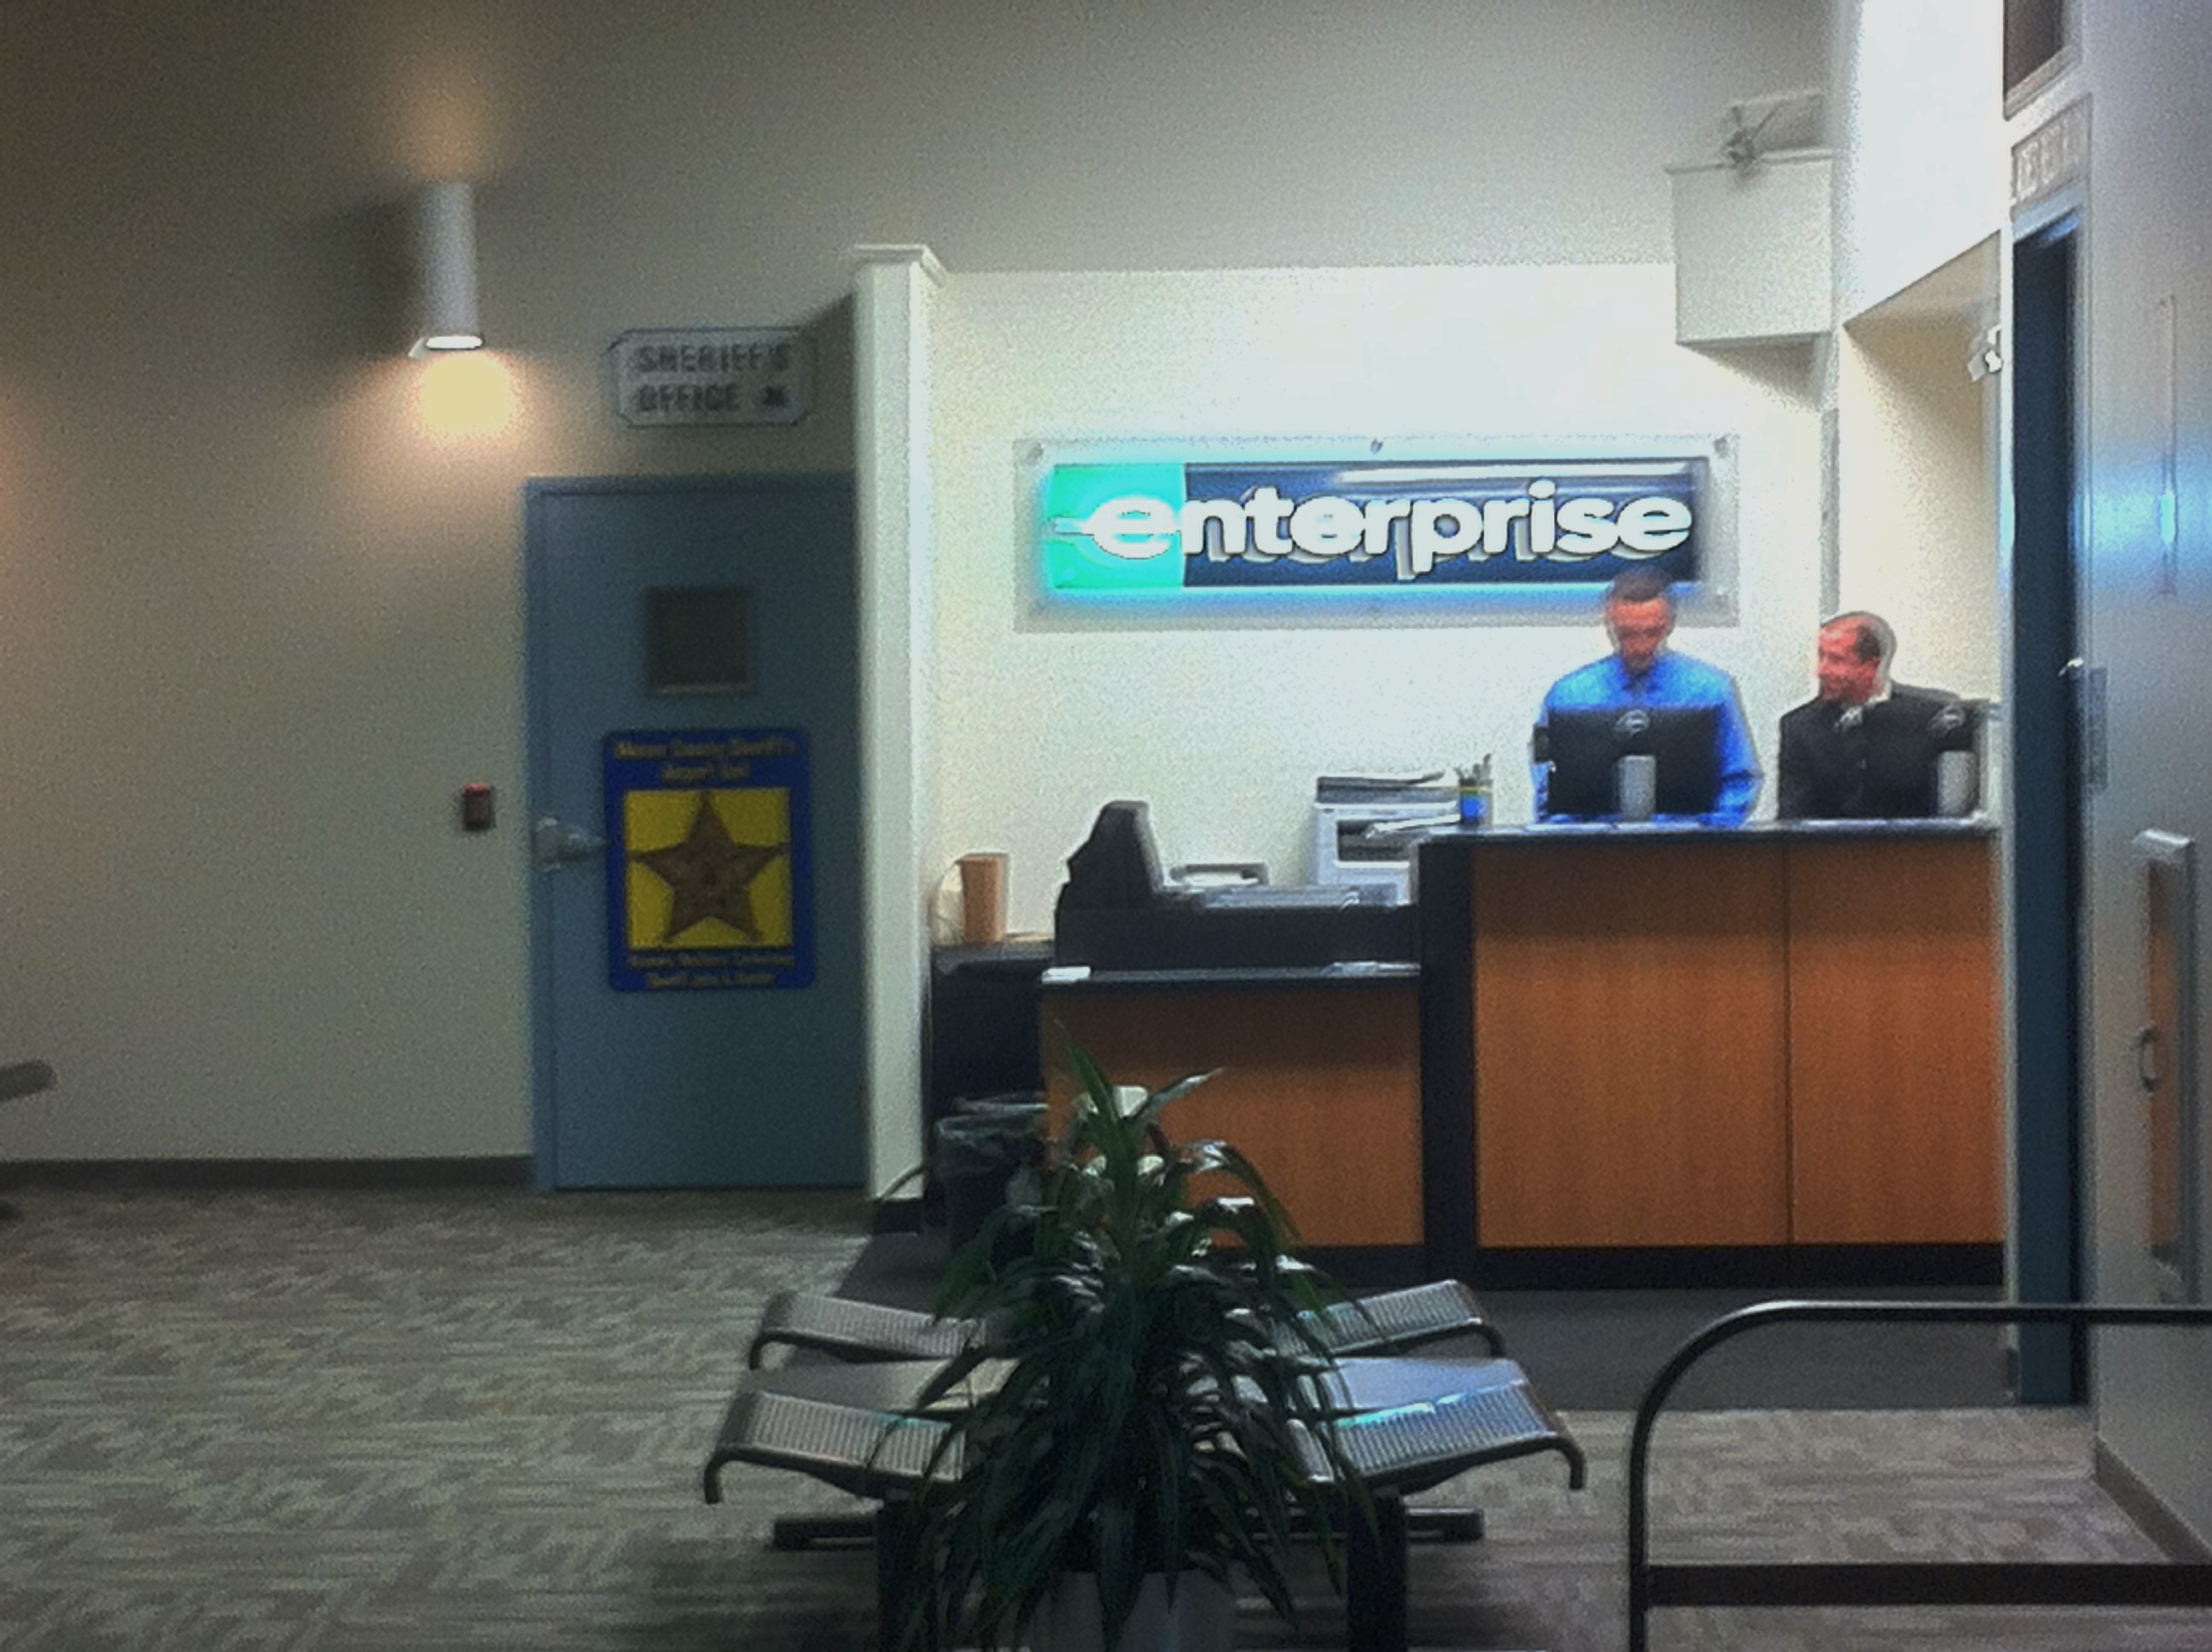 Enterprise Car Rental Amity Road New Haven Ct